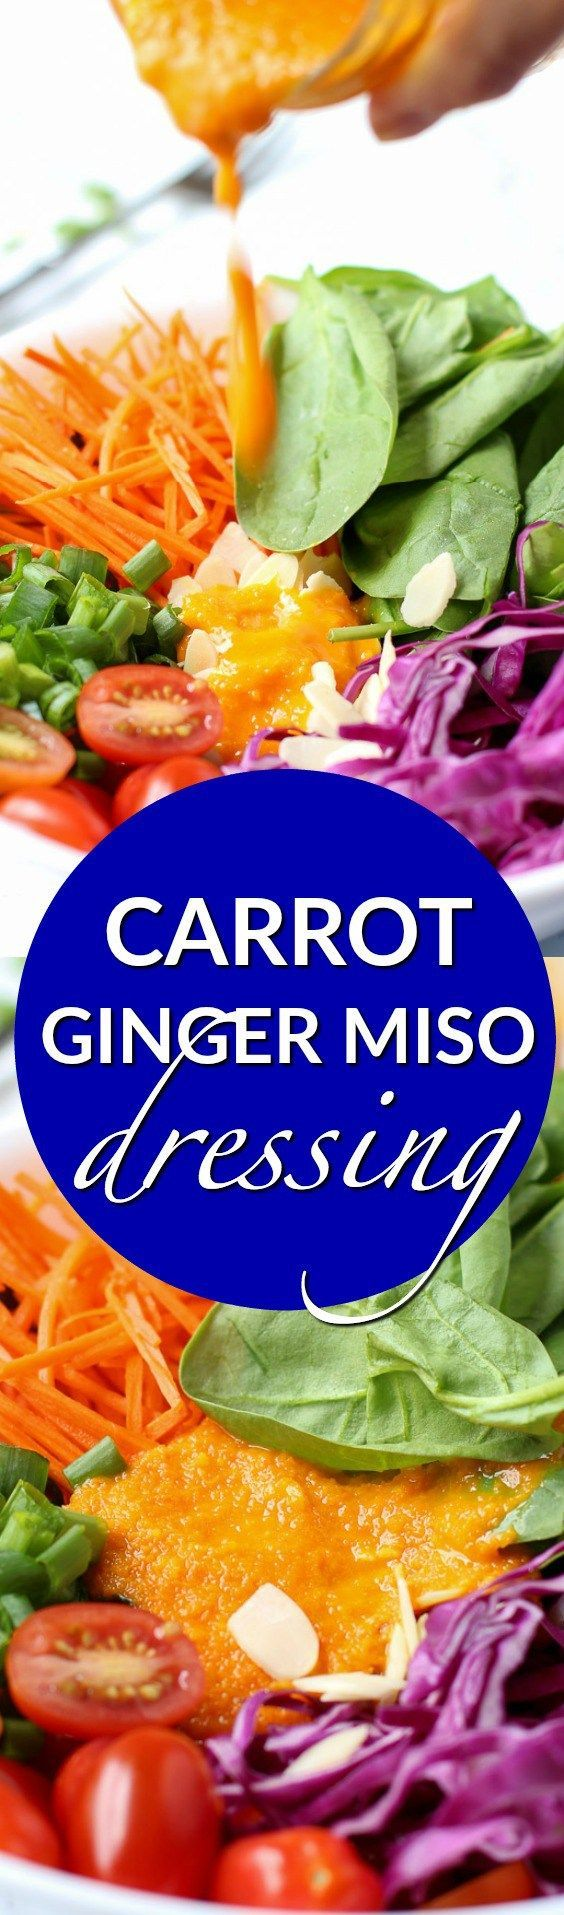 Carrot ginger miso dressing is a fresh and bright salad dressing that can easily be made at home in 5 minutes with 7 simple ingredients.  www.kimchichick.com